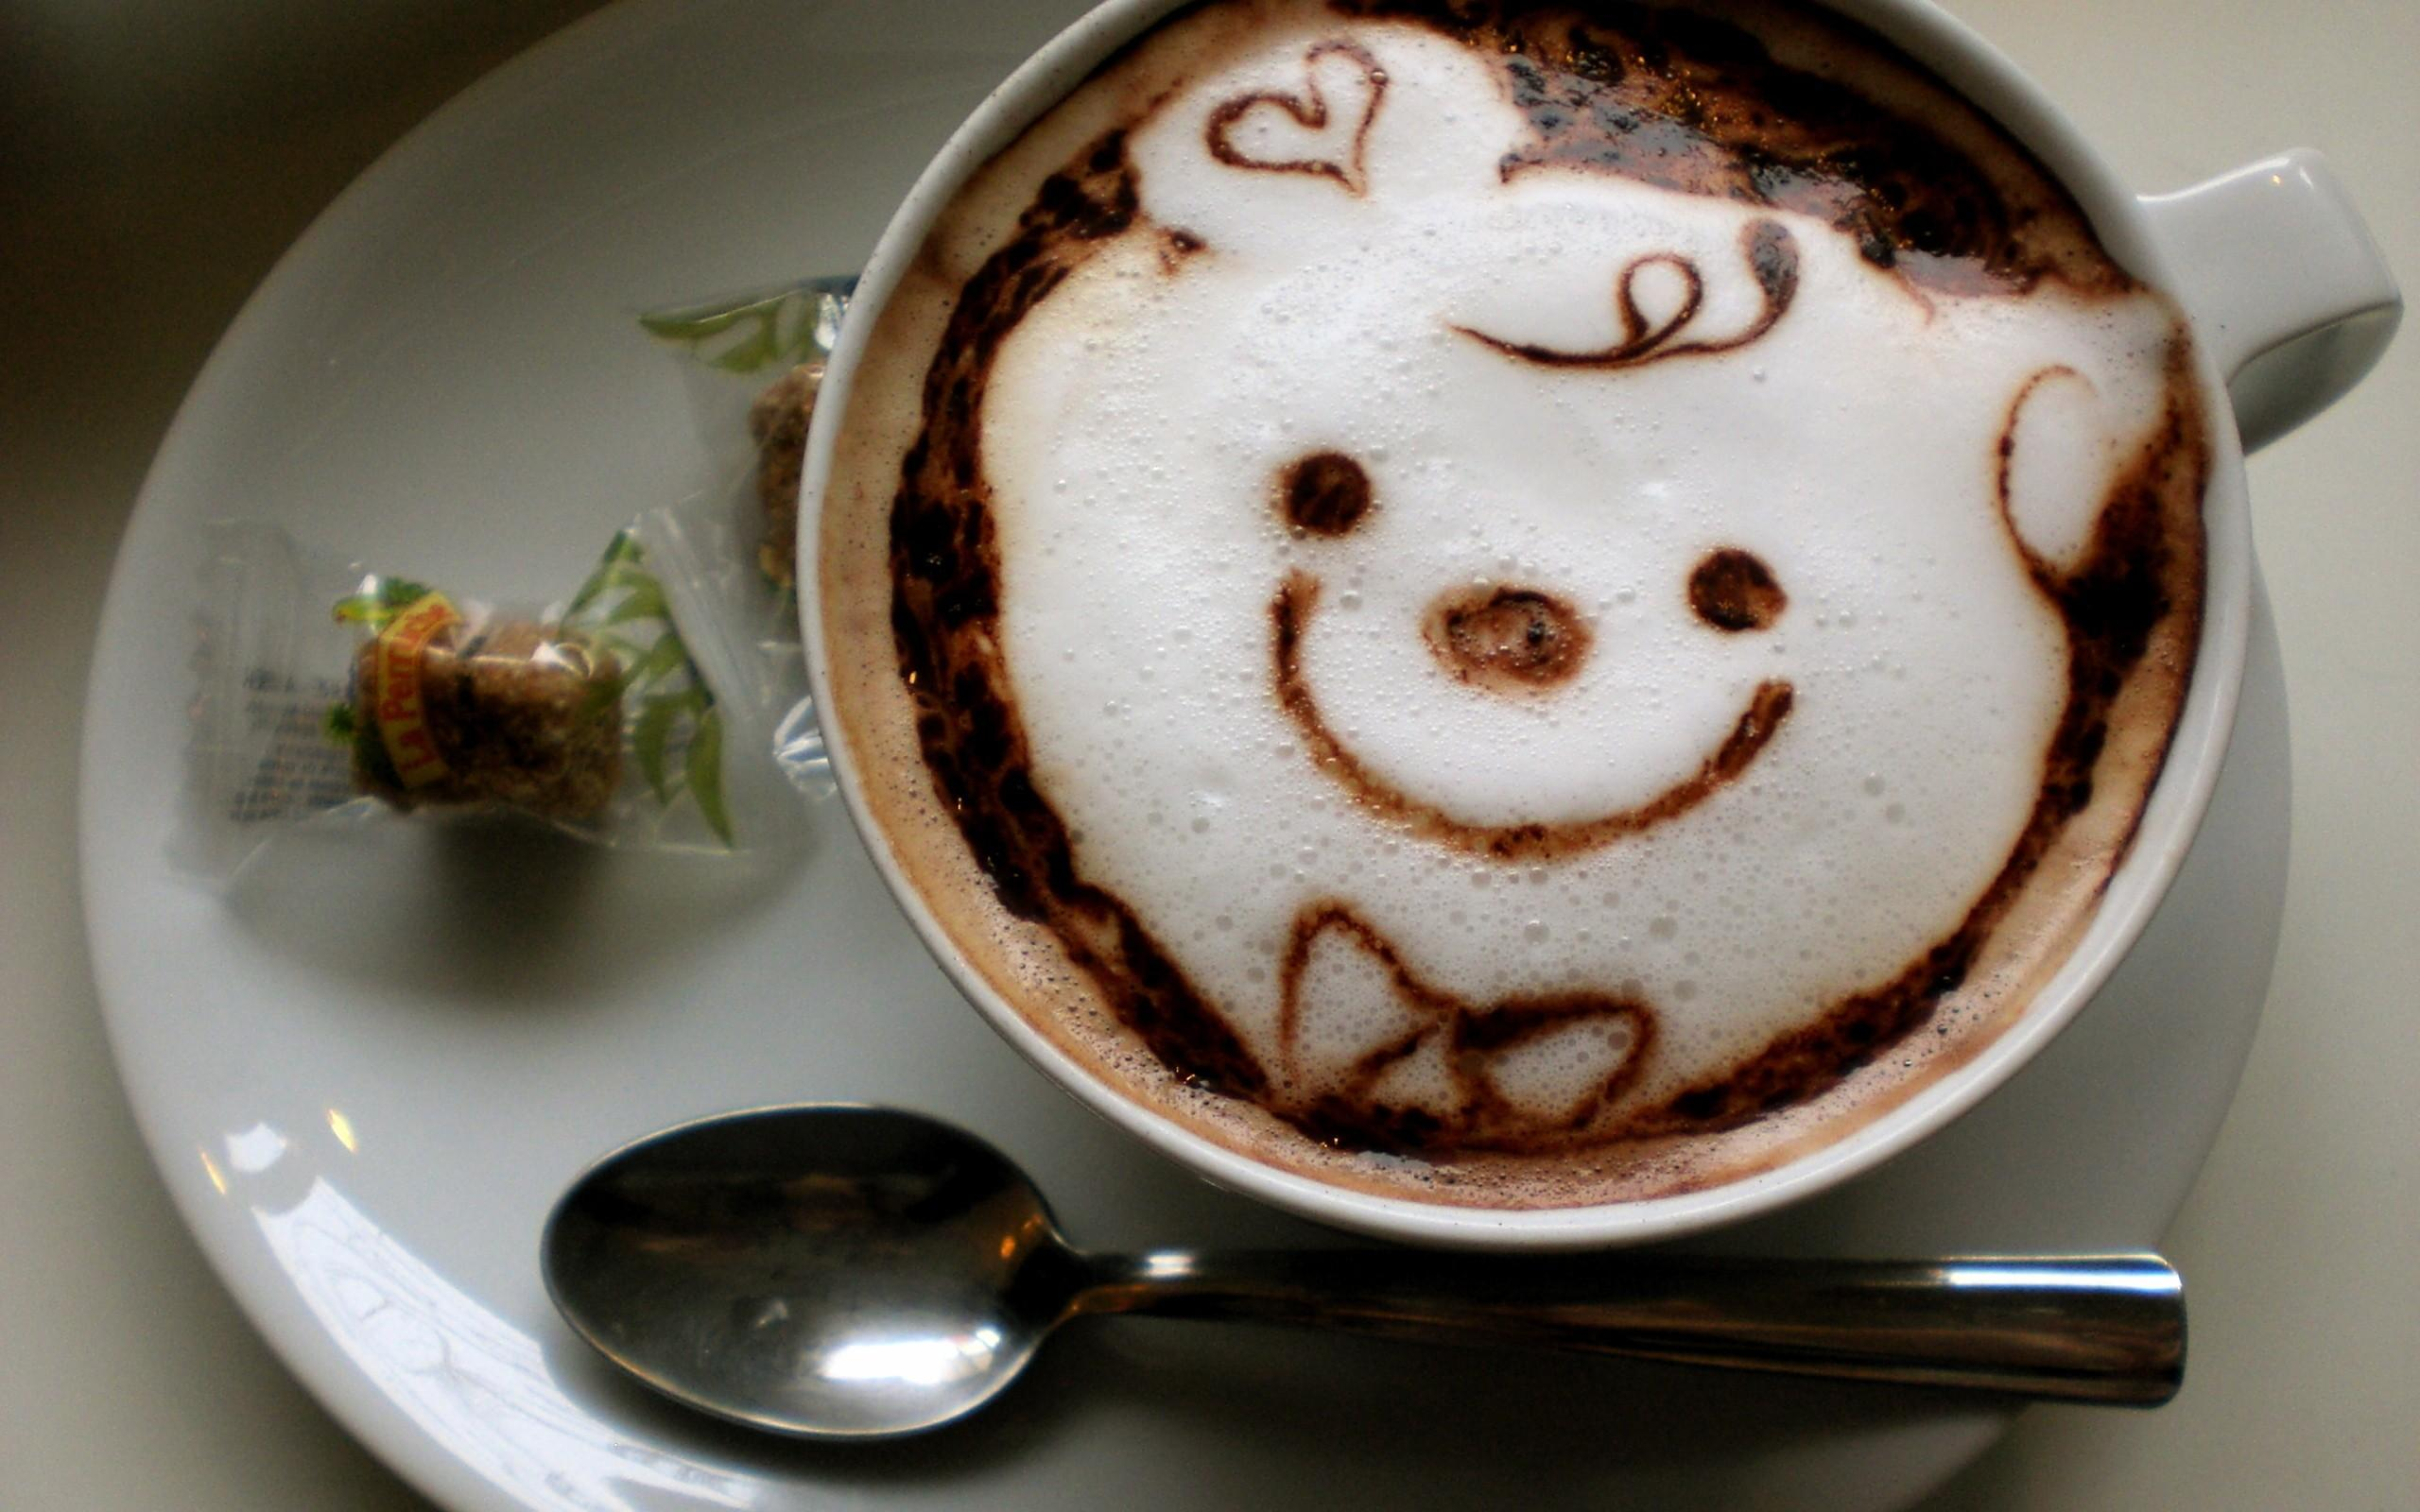 Cute Quotes Wallpapers Hd 请我喝咖啡吧 Buy Me A Coffee 磊语